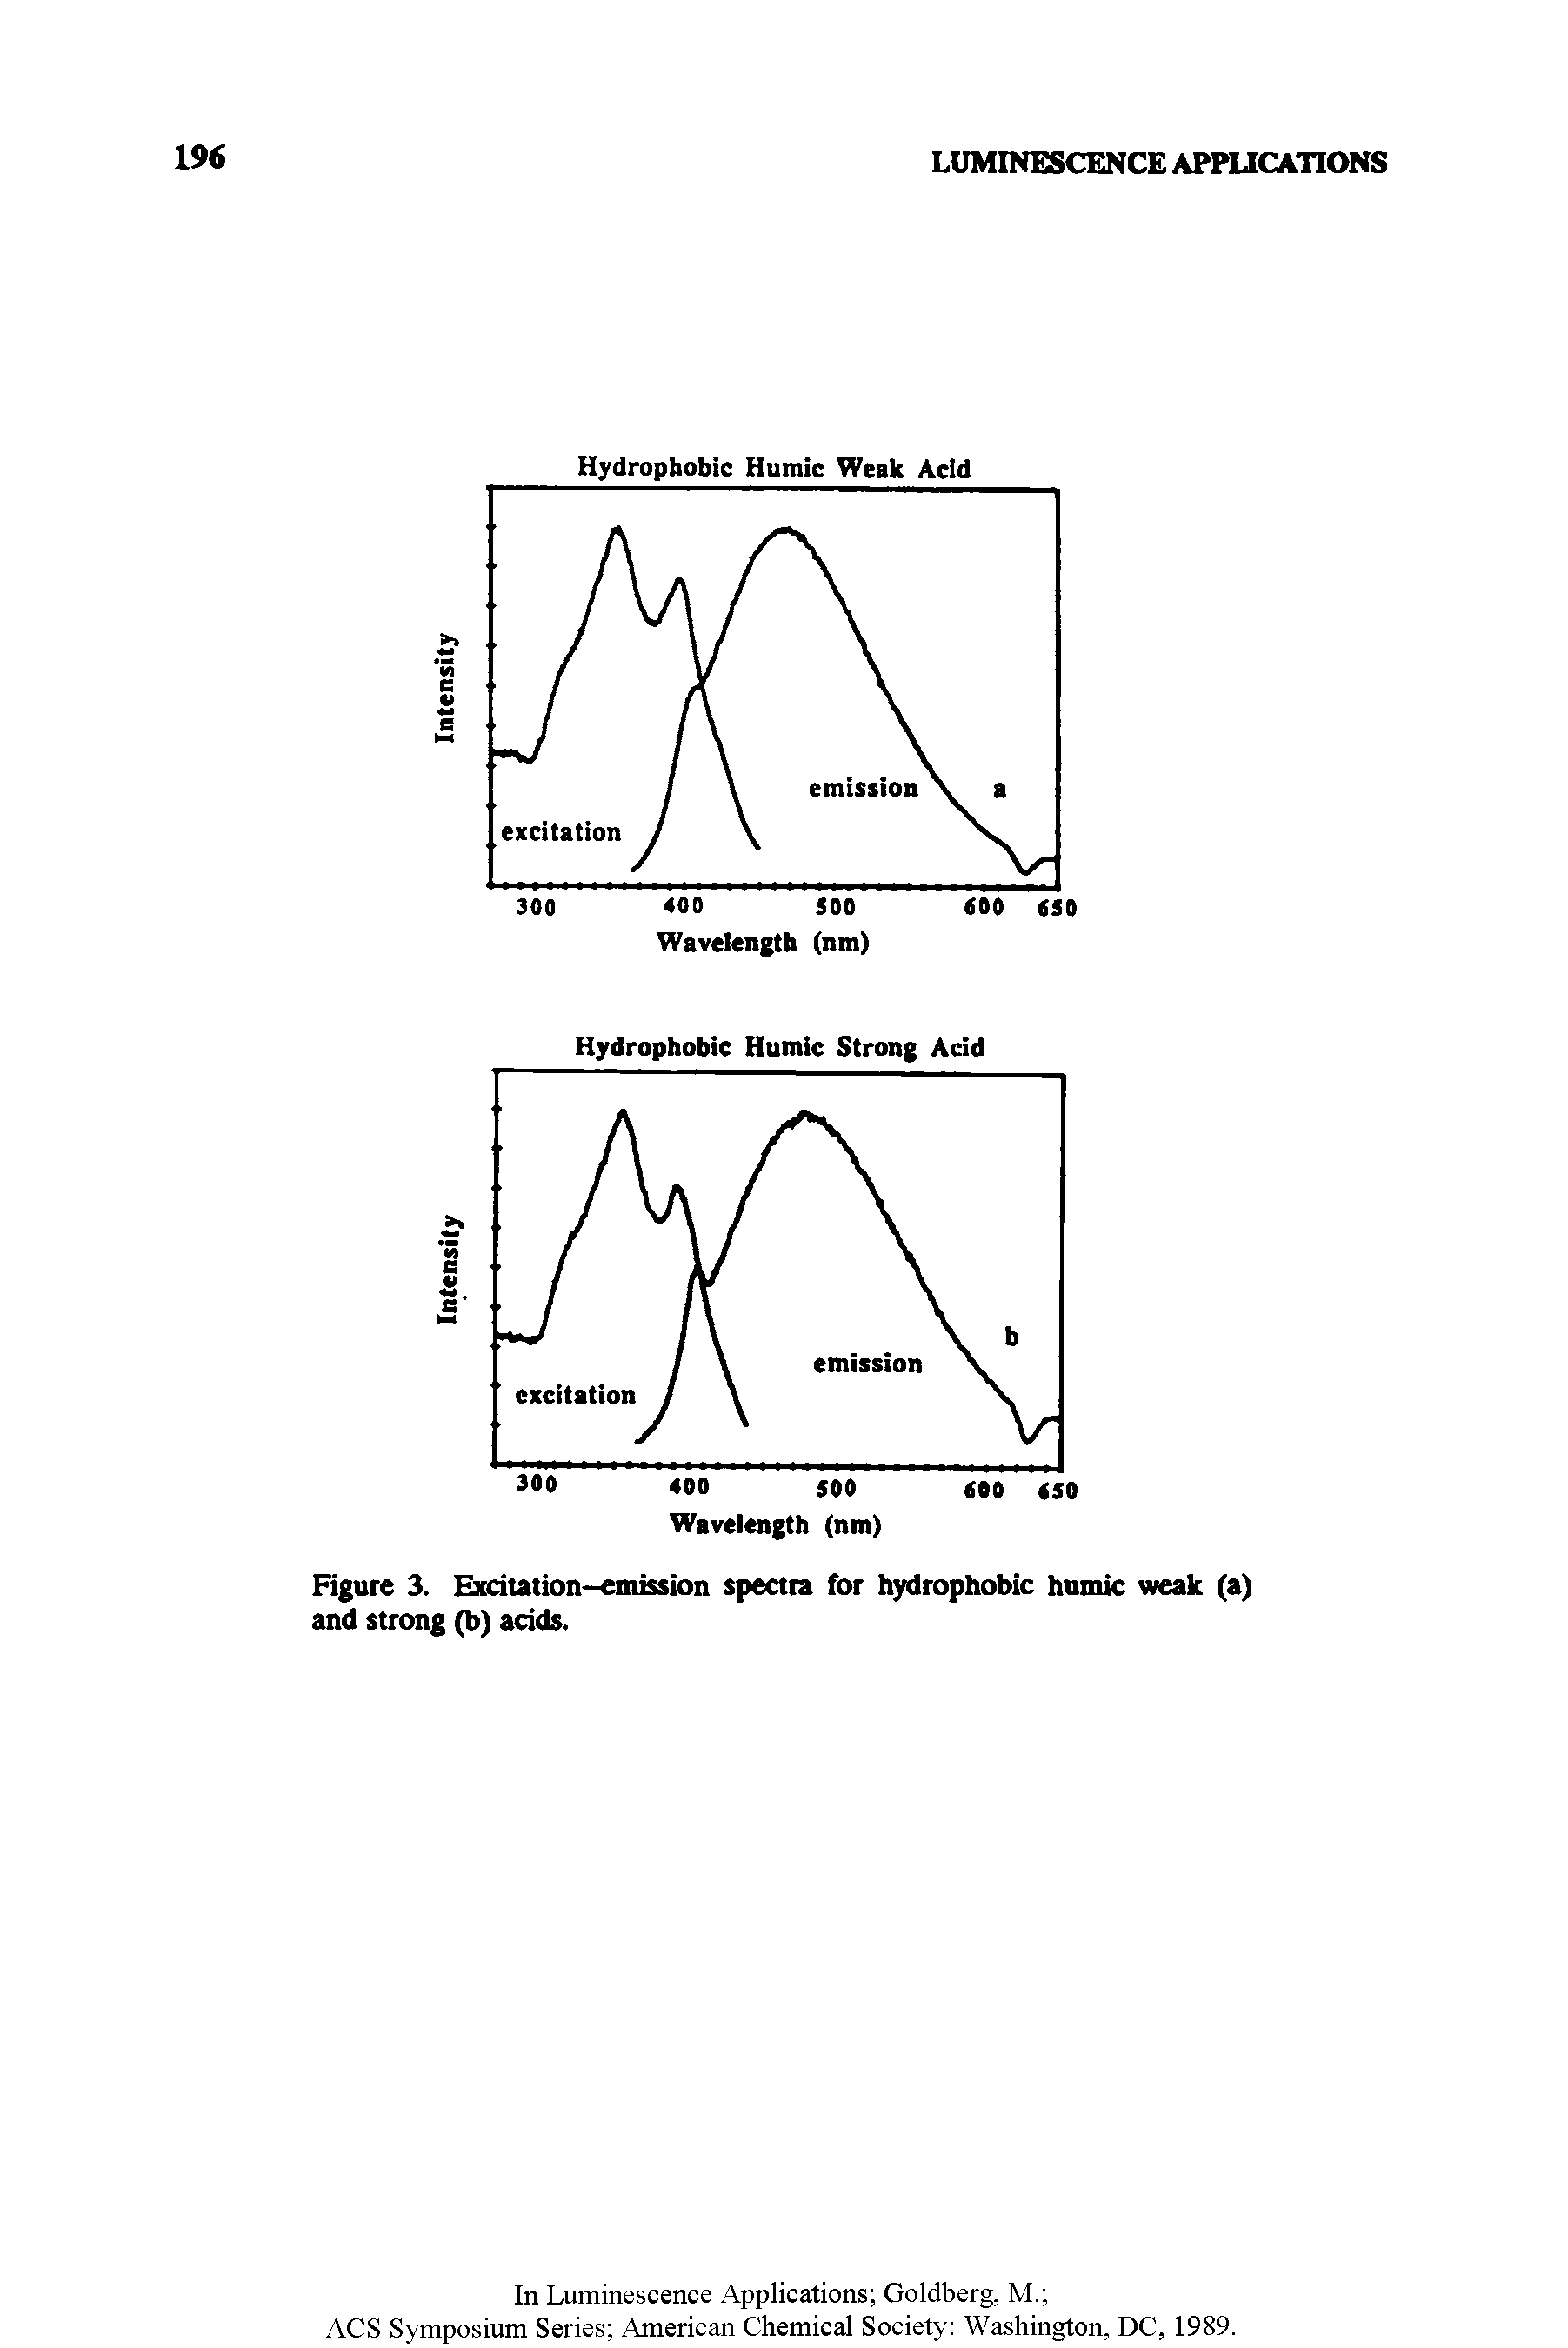 "Figure 3. <a href=""/info/emission_and_excitation_spectra"">Excitation-emission spectra</a> for hydrophobic humic weak (a) and strong (b) acids."